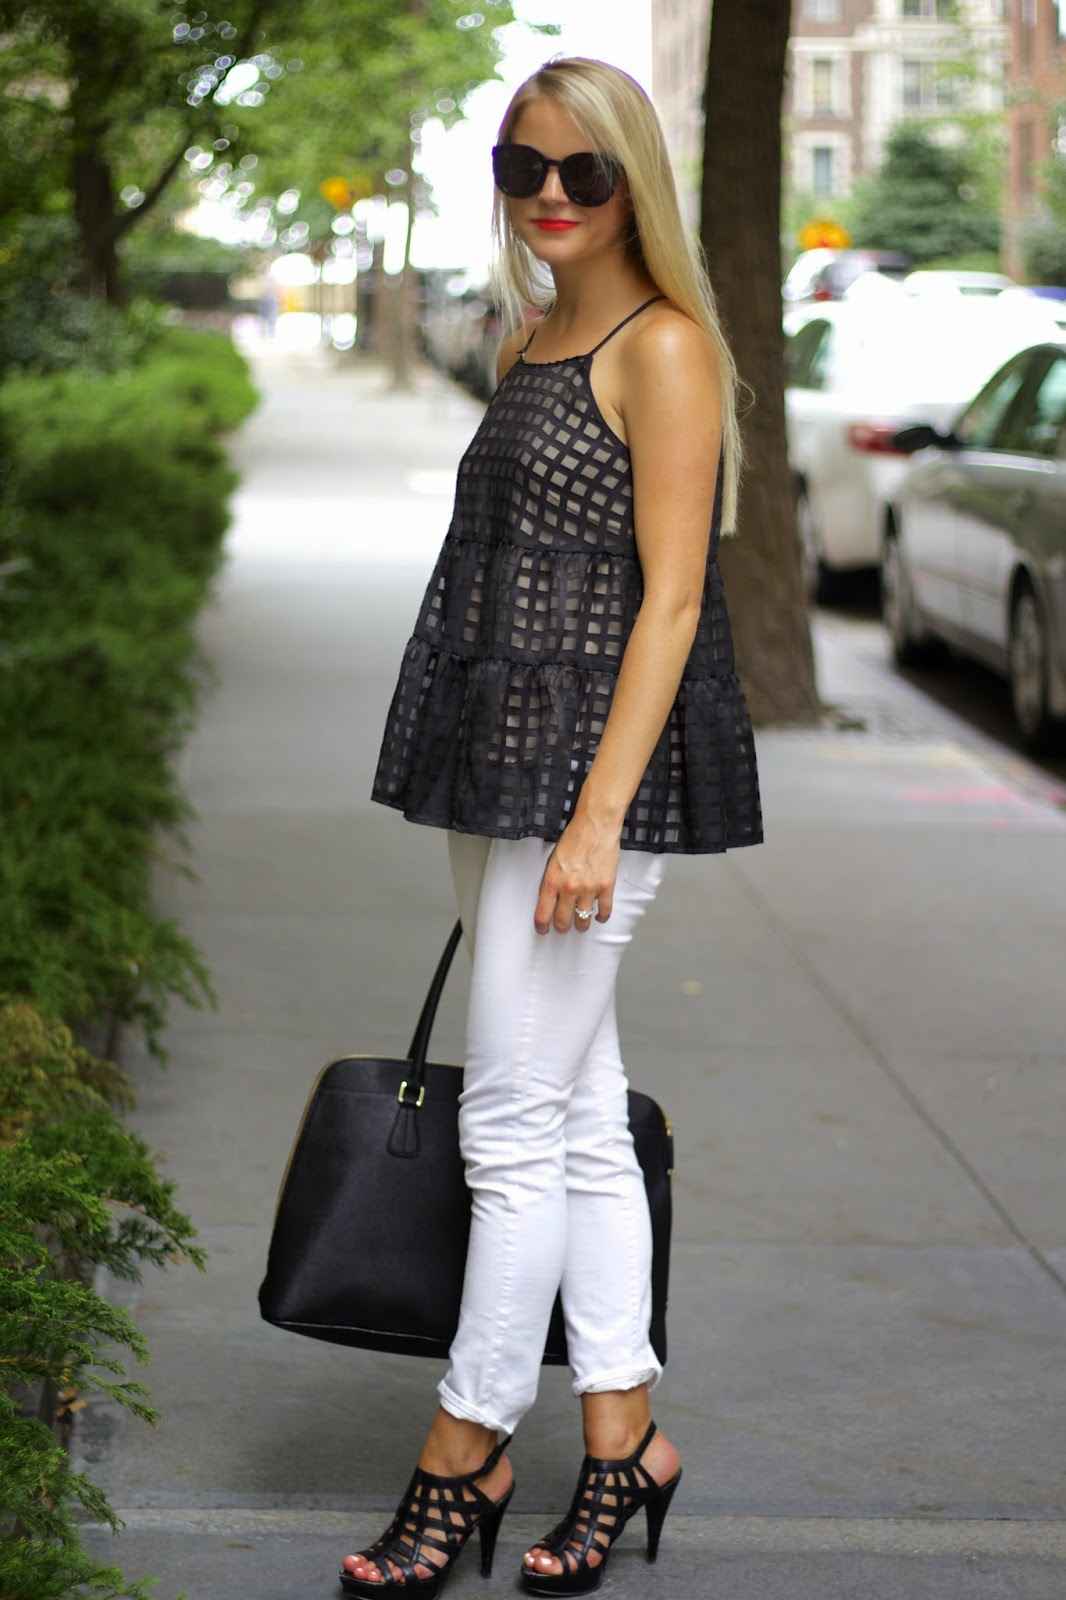 anthropologie swing pane tank, black and white outfit inspiration, styles, swingpane tank,